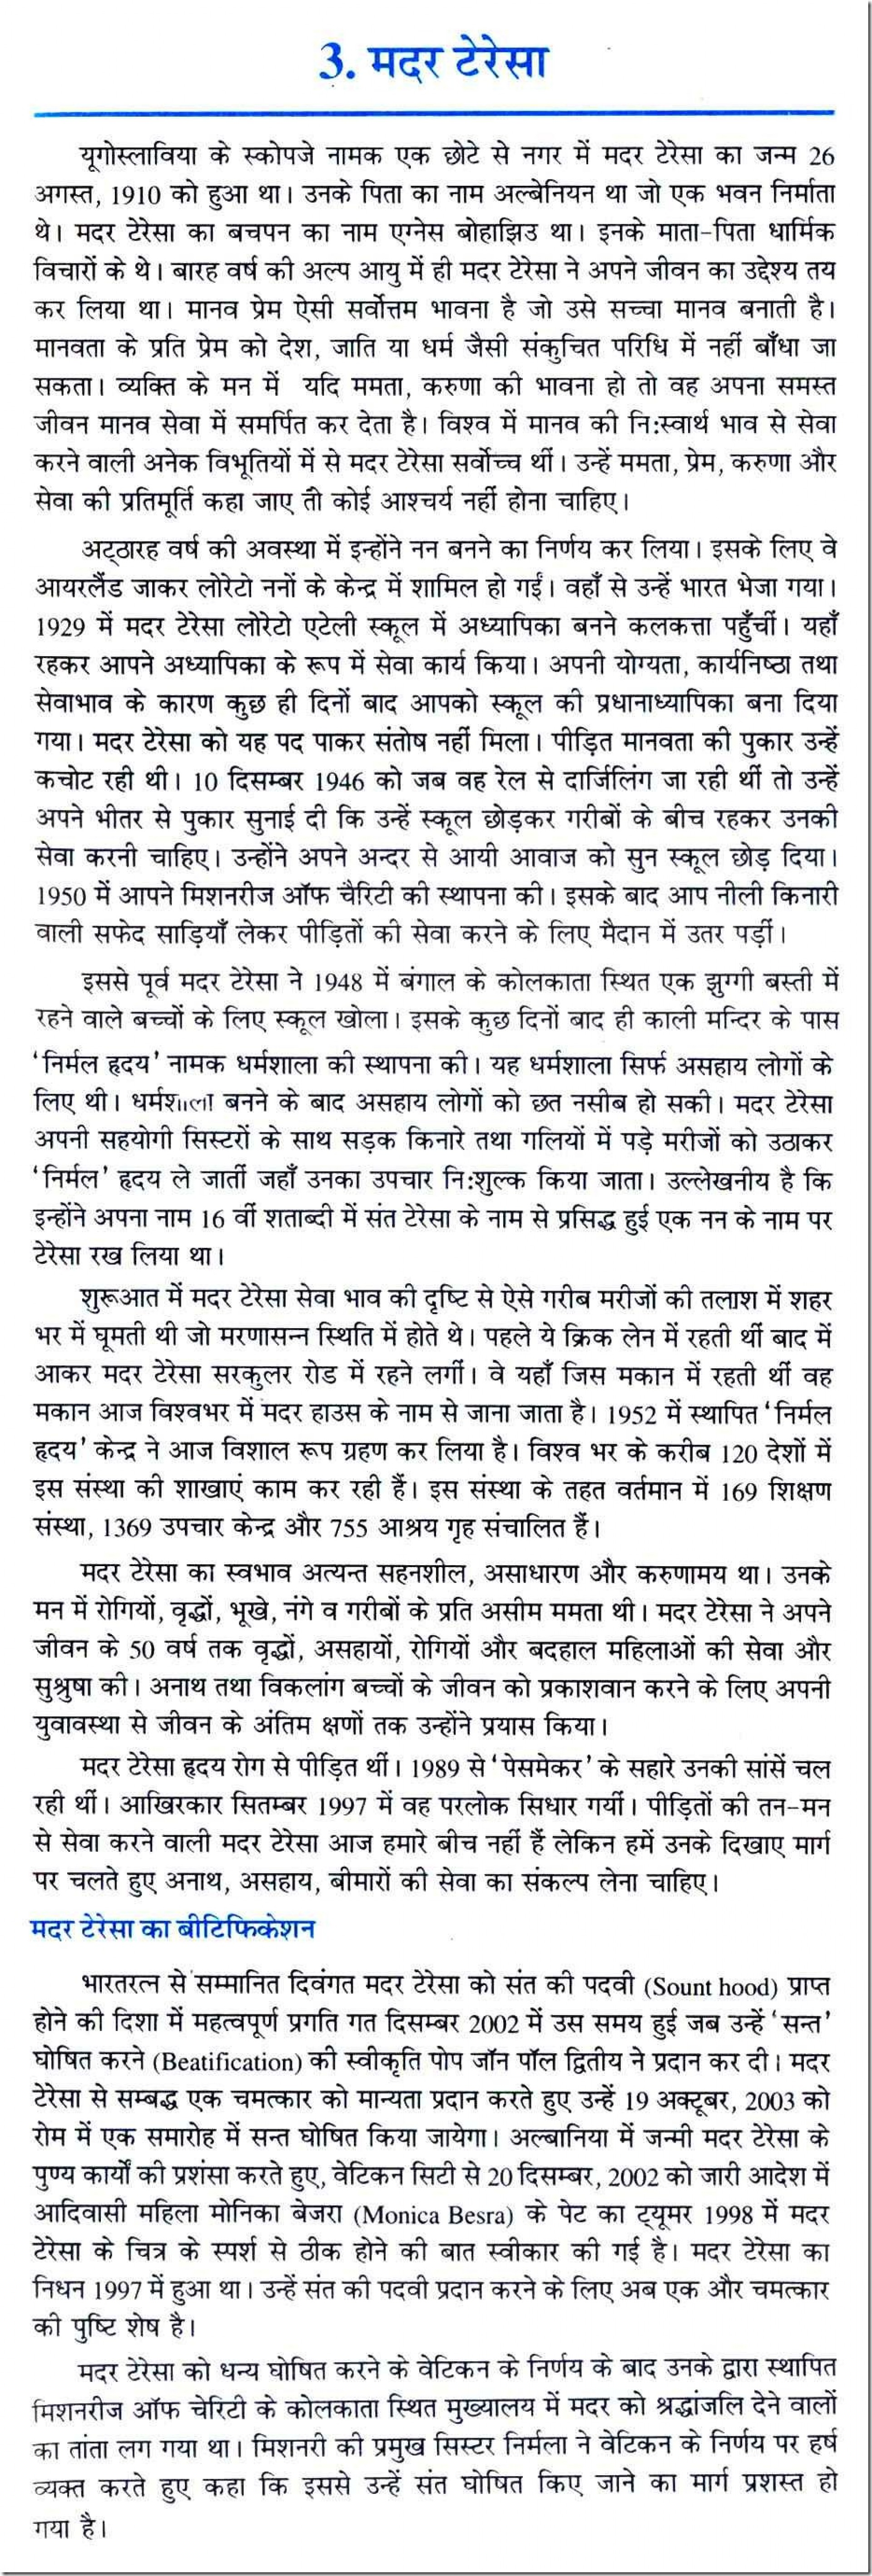 014 0020003 Thumb Essay Example About Surprising Mom In Hindi Being A Hero And Dad 1920